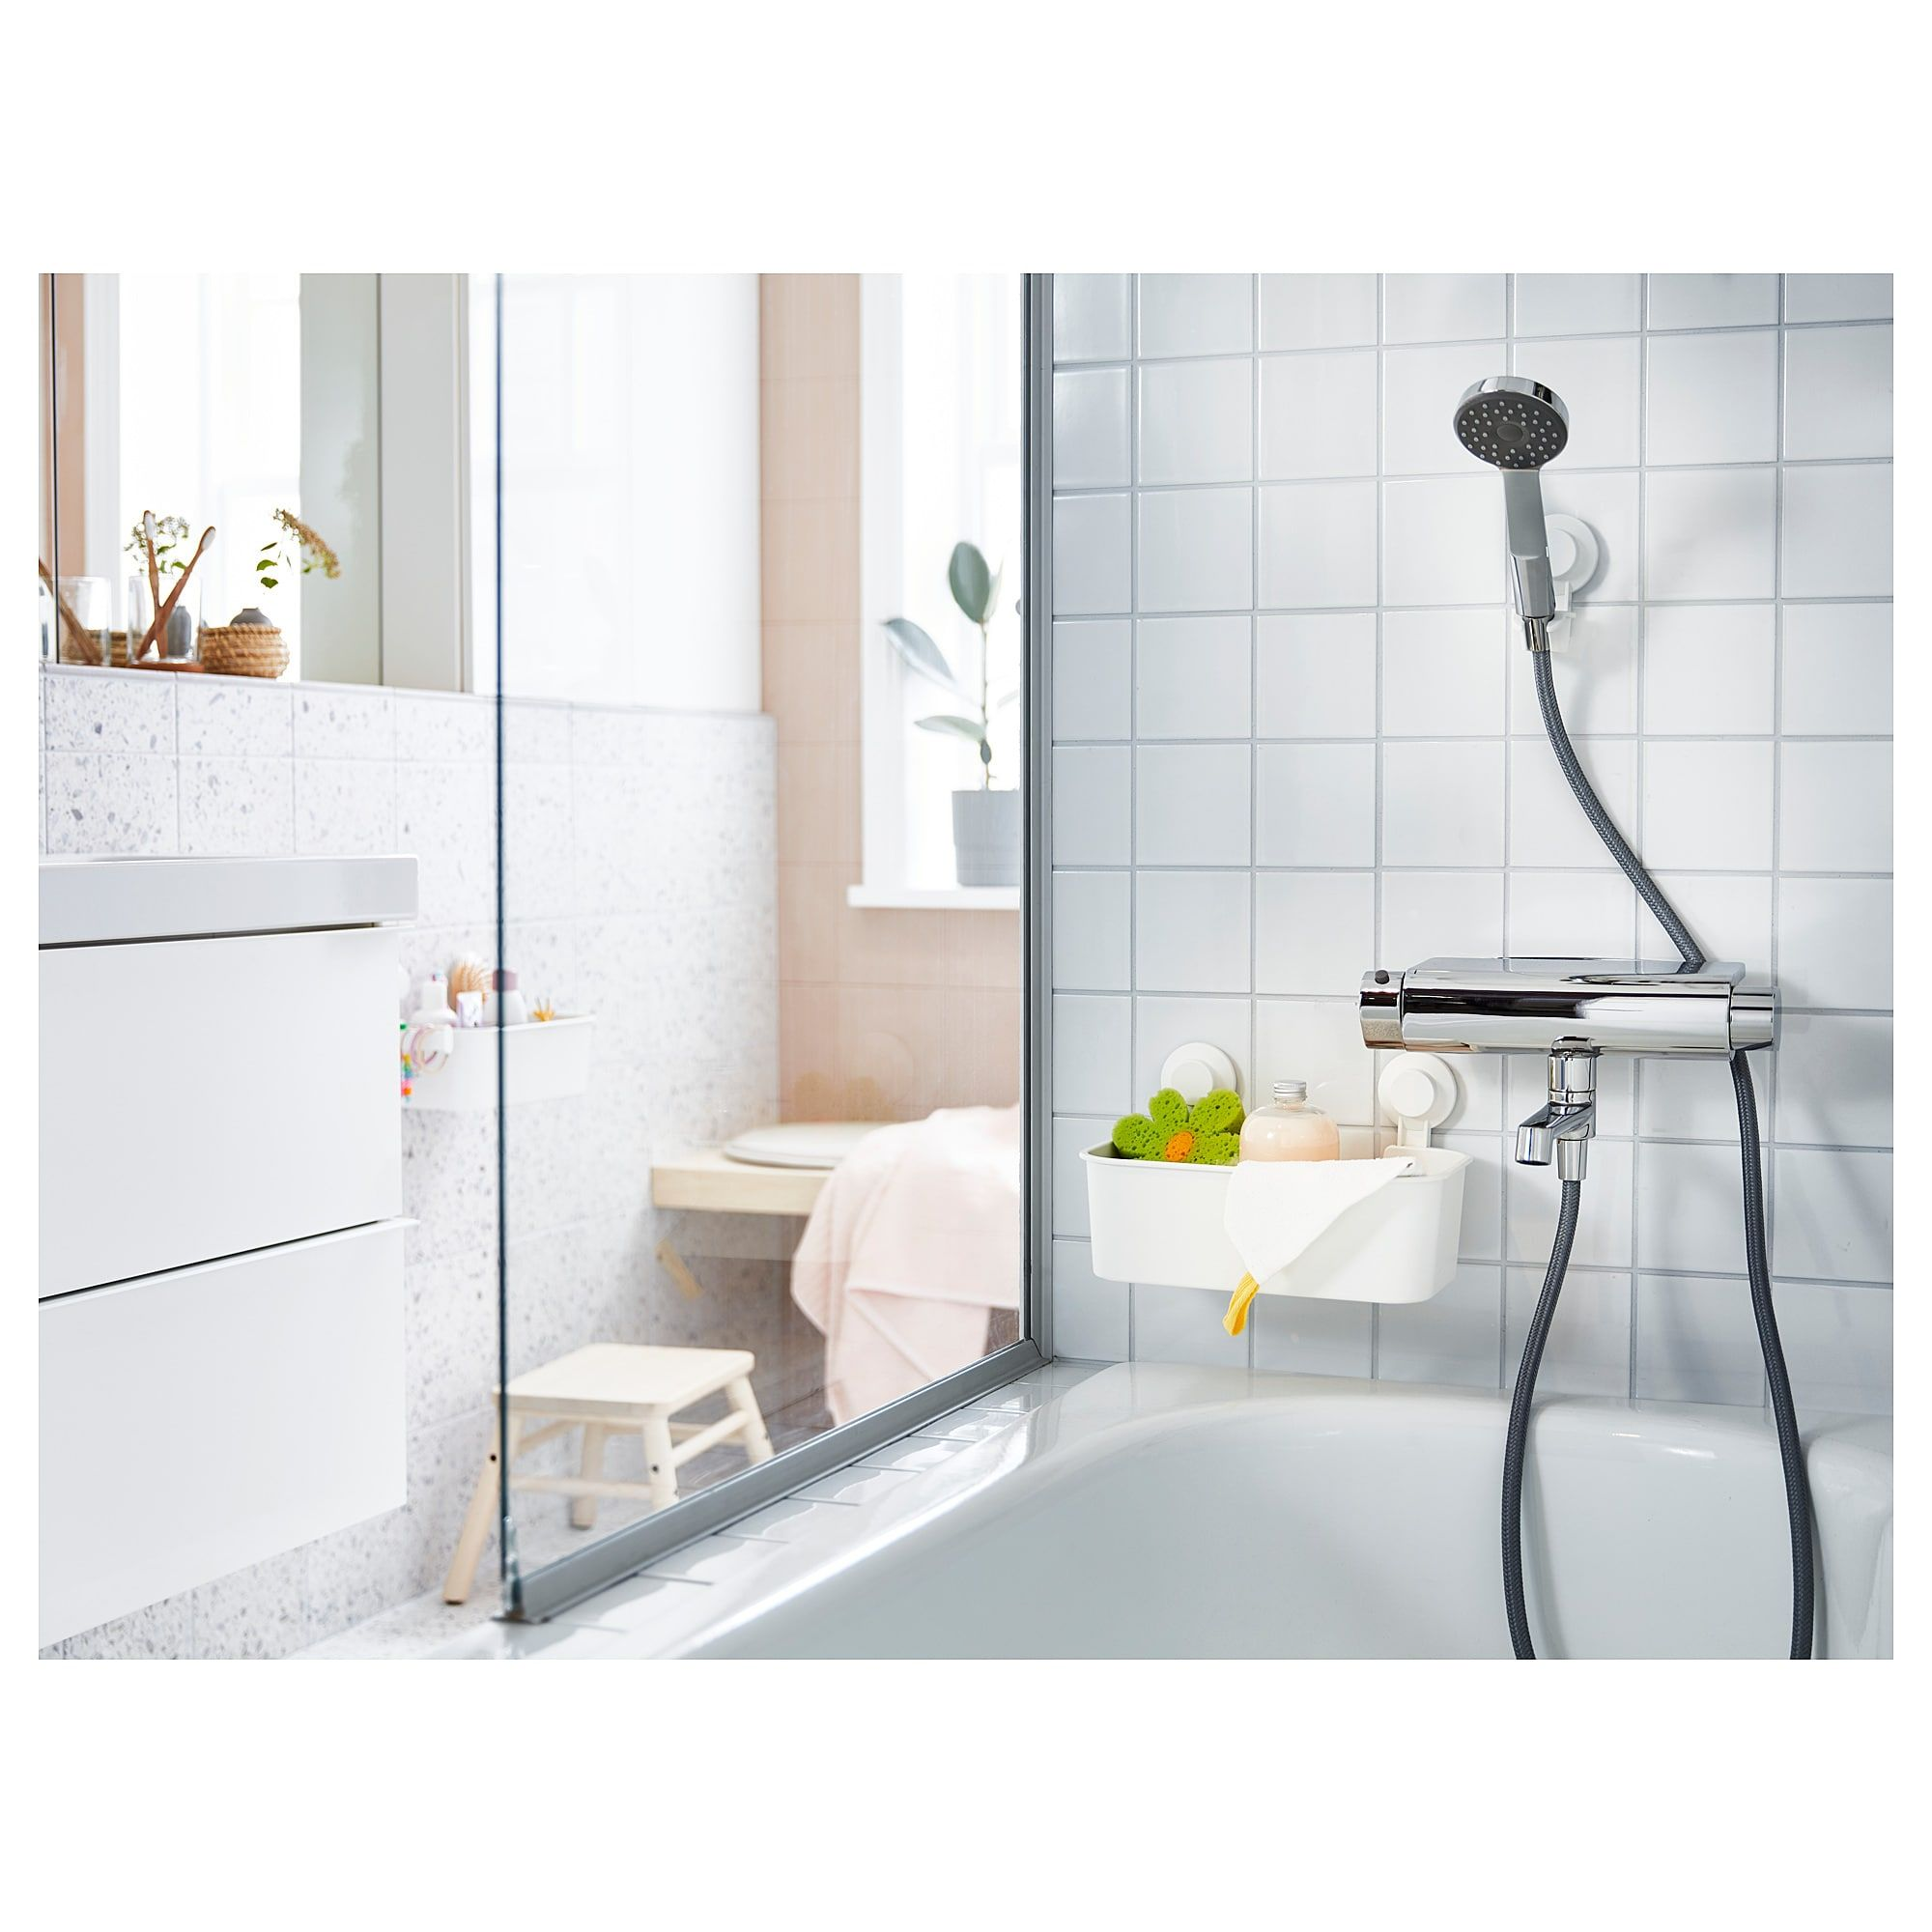 Ikea Tisken White Basket With Suction Cup Bathroom Storage Units